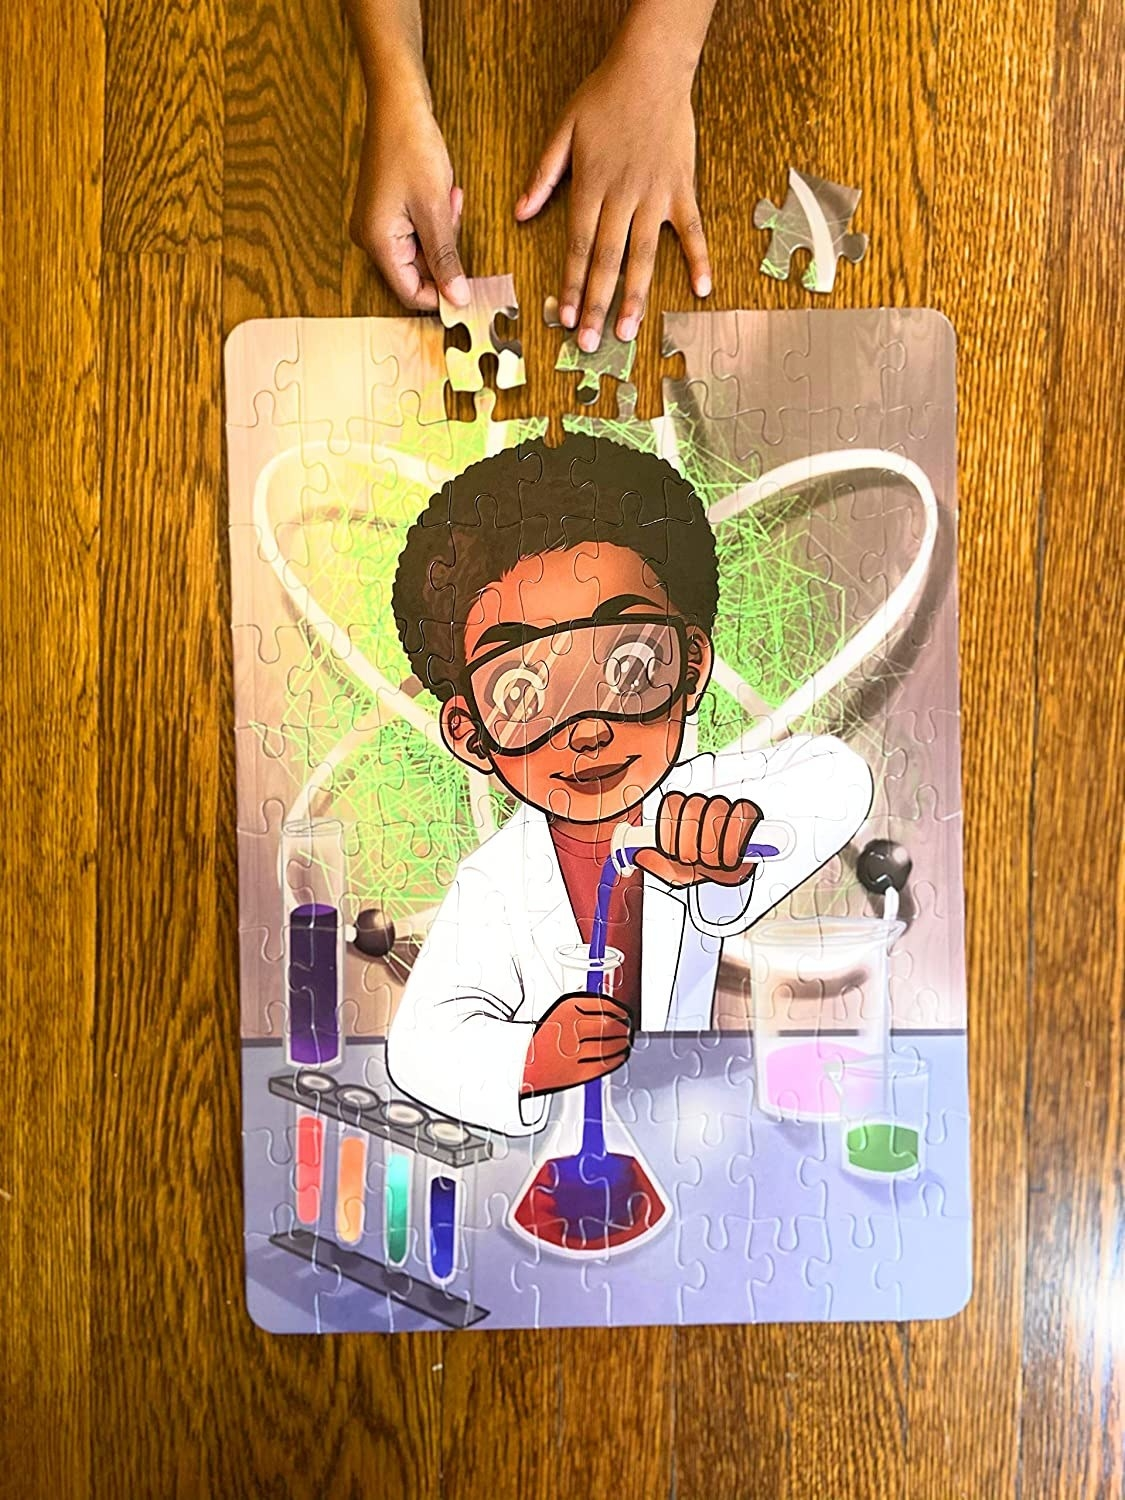 The puzzle with an illustration of someone using chemistry equipment